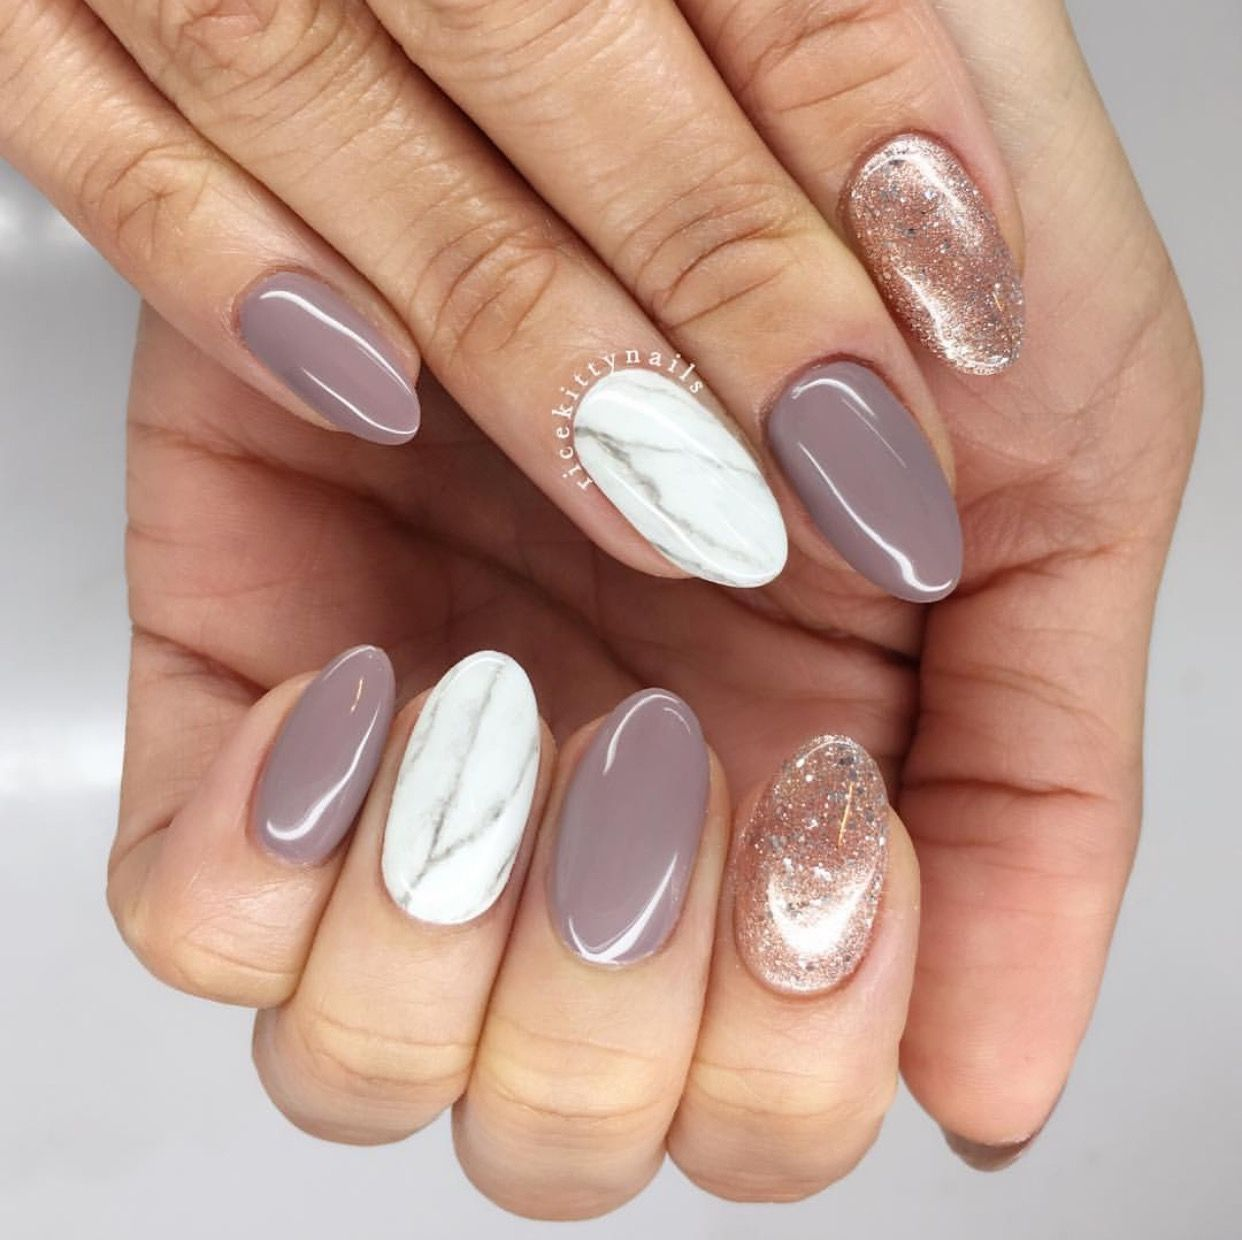 Nägel Modern Very Modern Nails Nails In 2019 Nails Nail Designs